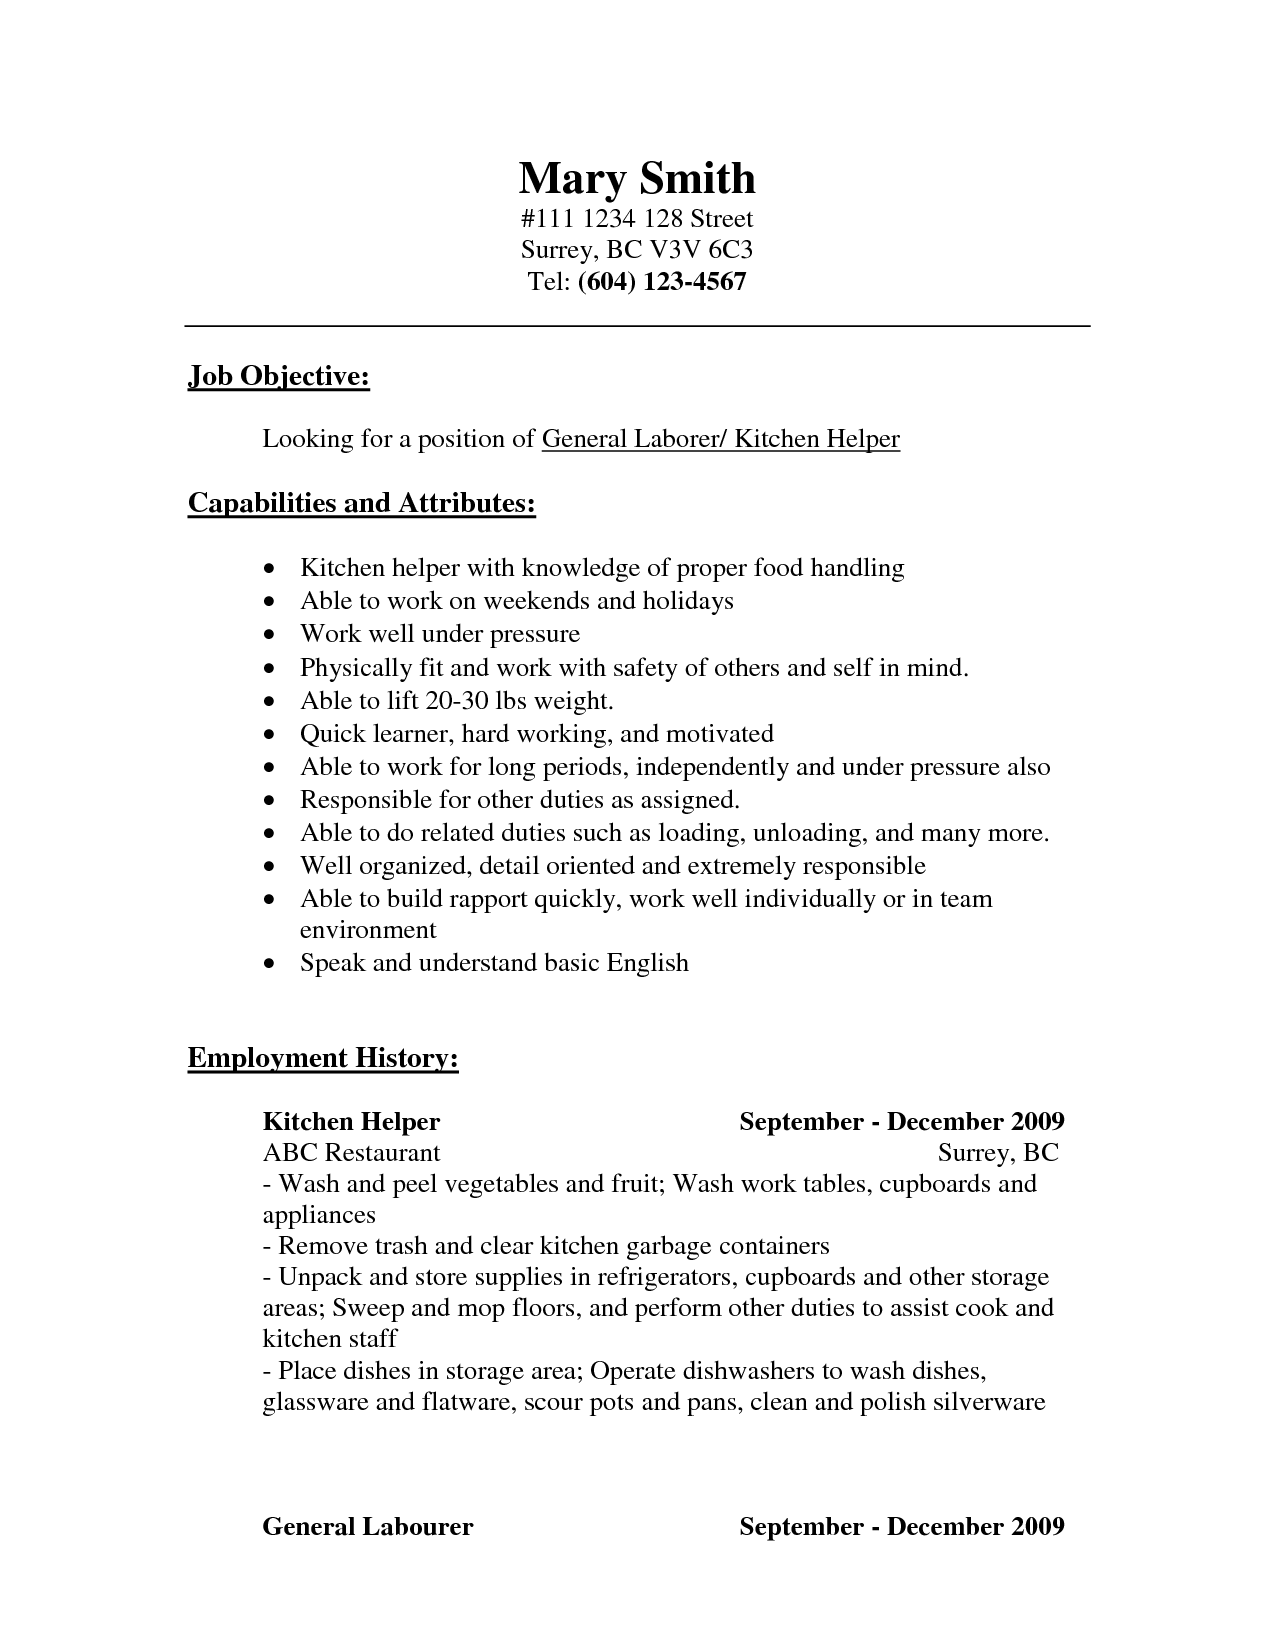 Cook Job Description For Resume Prepossessing Resume Examples Kitchen Helper  Pinterest  Resume Helper Letter .